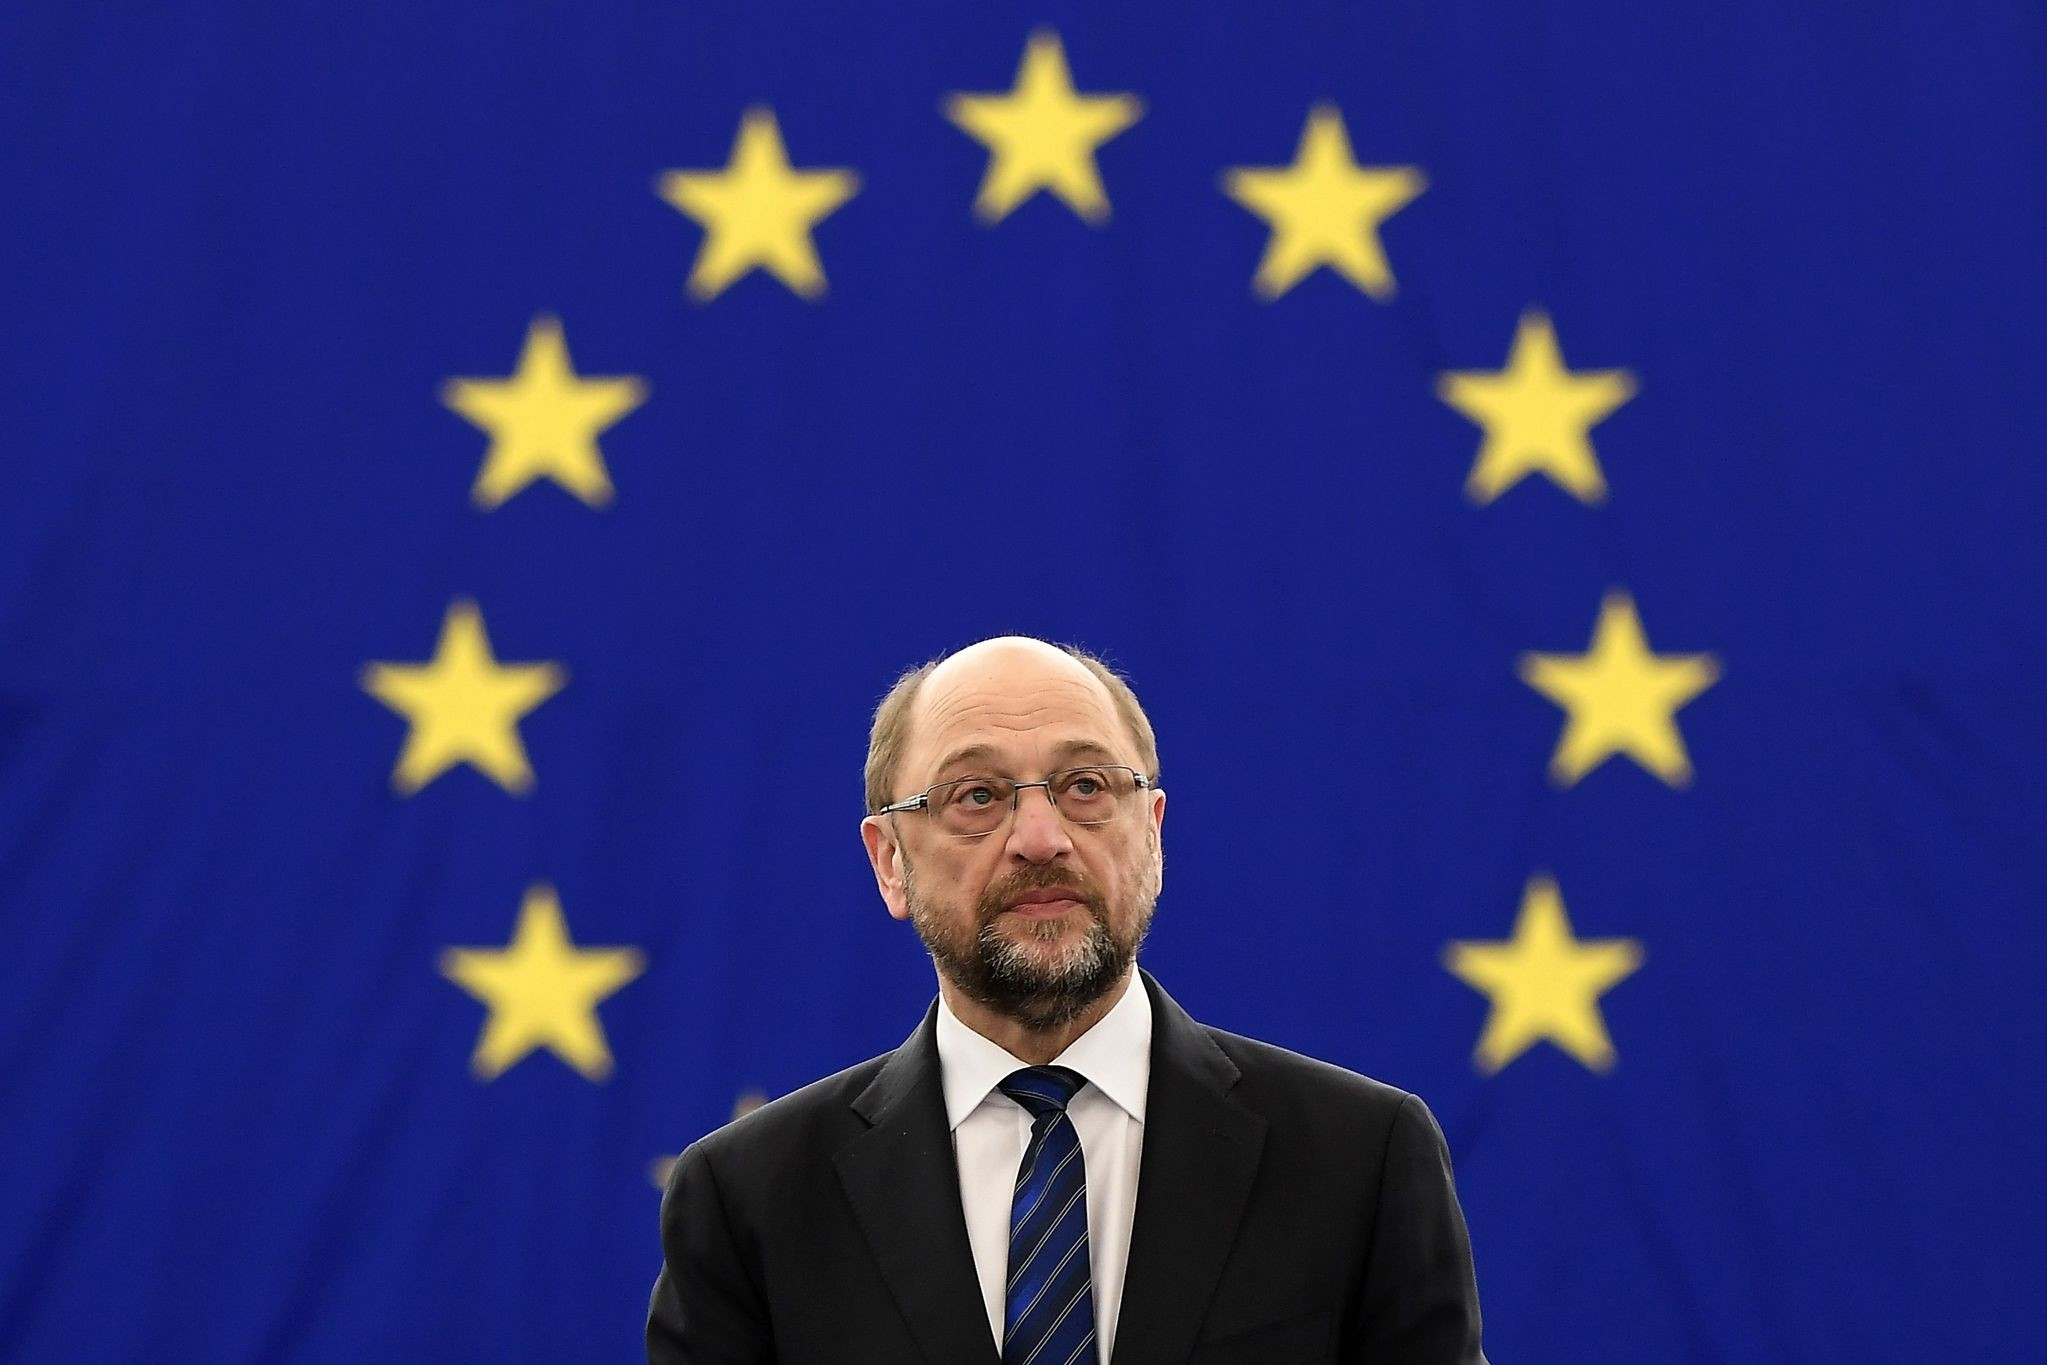 This file photo taken on January 16, 2017 shows then European Parliament President Martin Schulz waiting for the announcement of the candidates for the election. (AFP Photo)